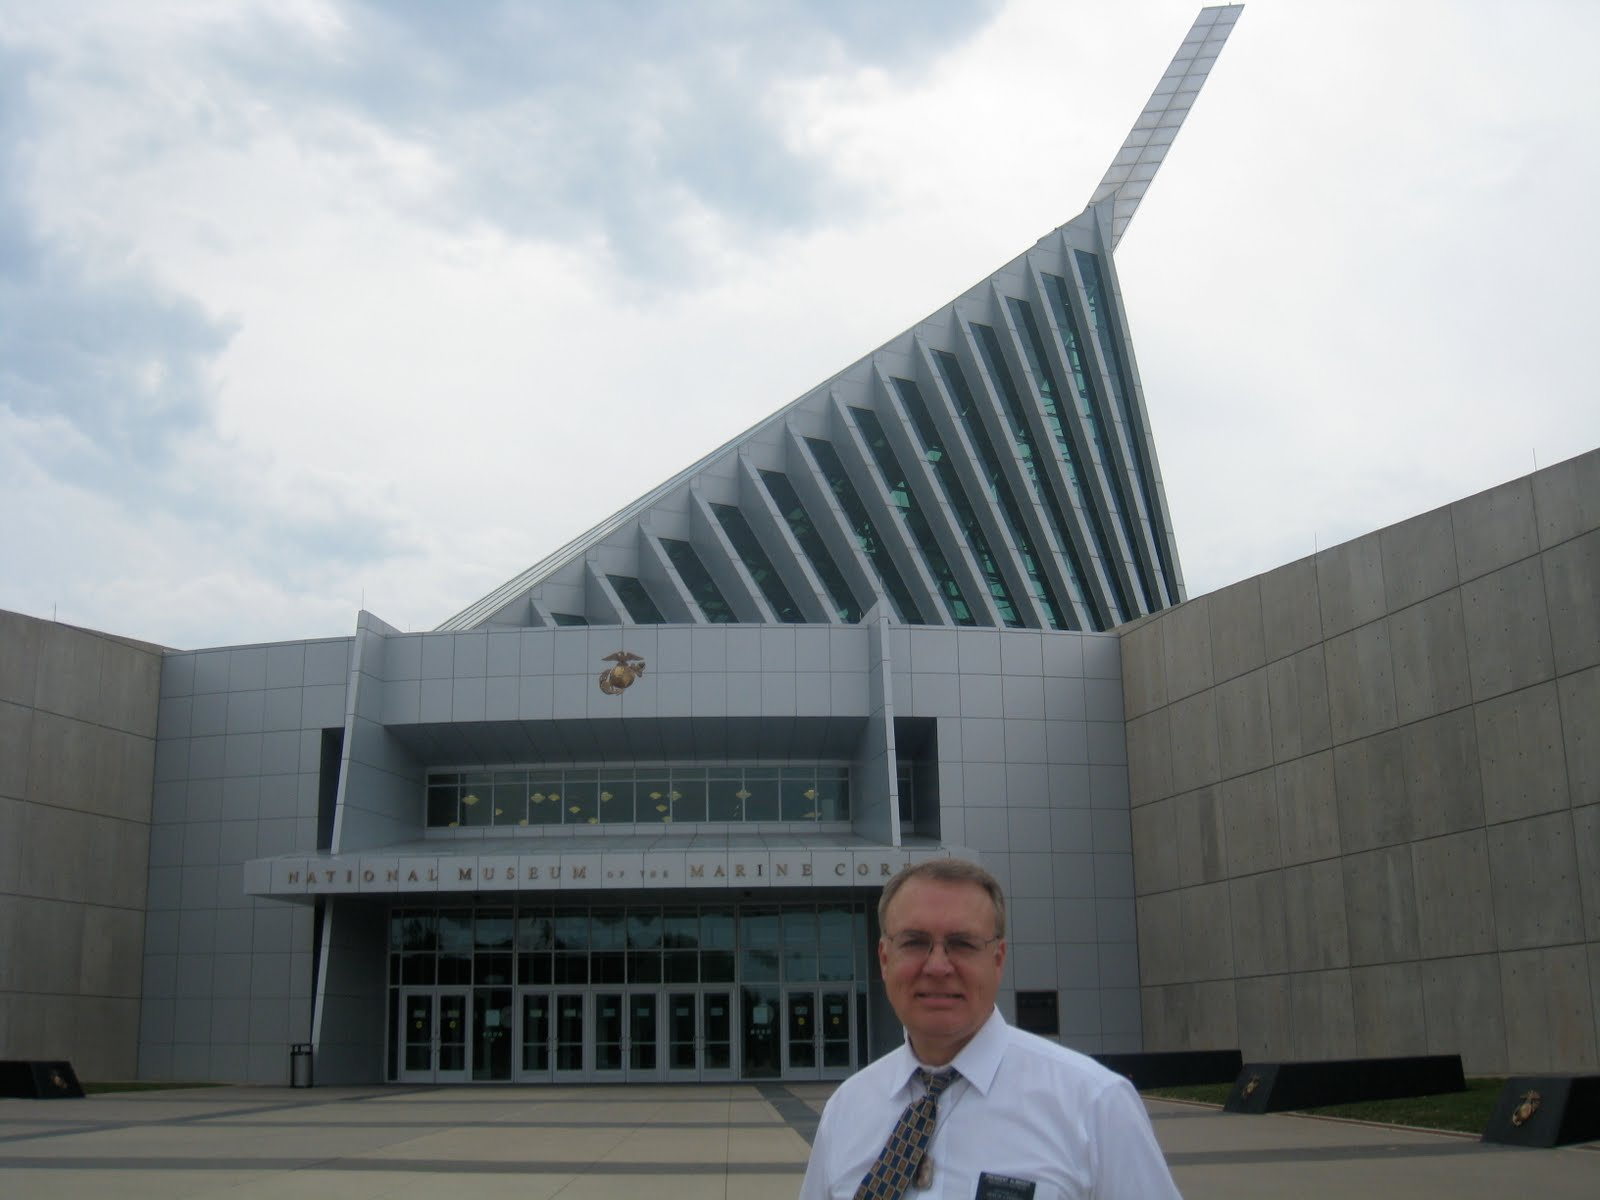 This Is The Front Of National Museum Marine Corp In Quantico Its Architecture Represents Iwo Jima Where Marines Prevailed